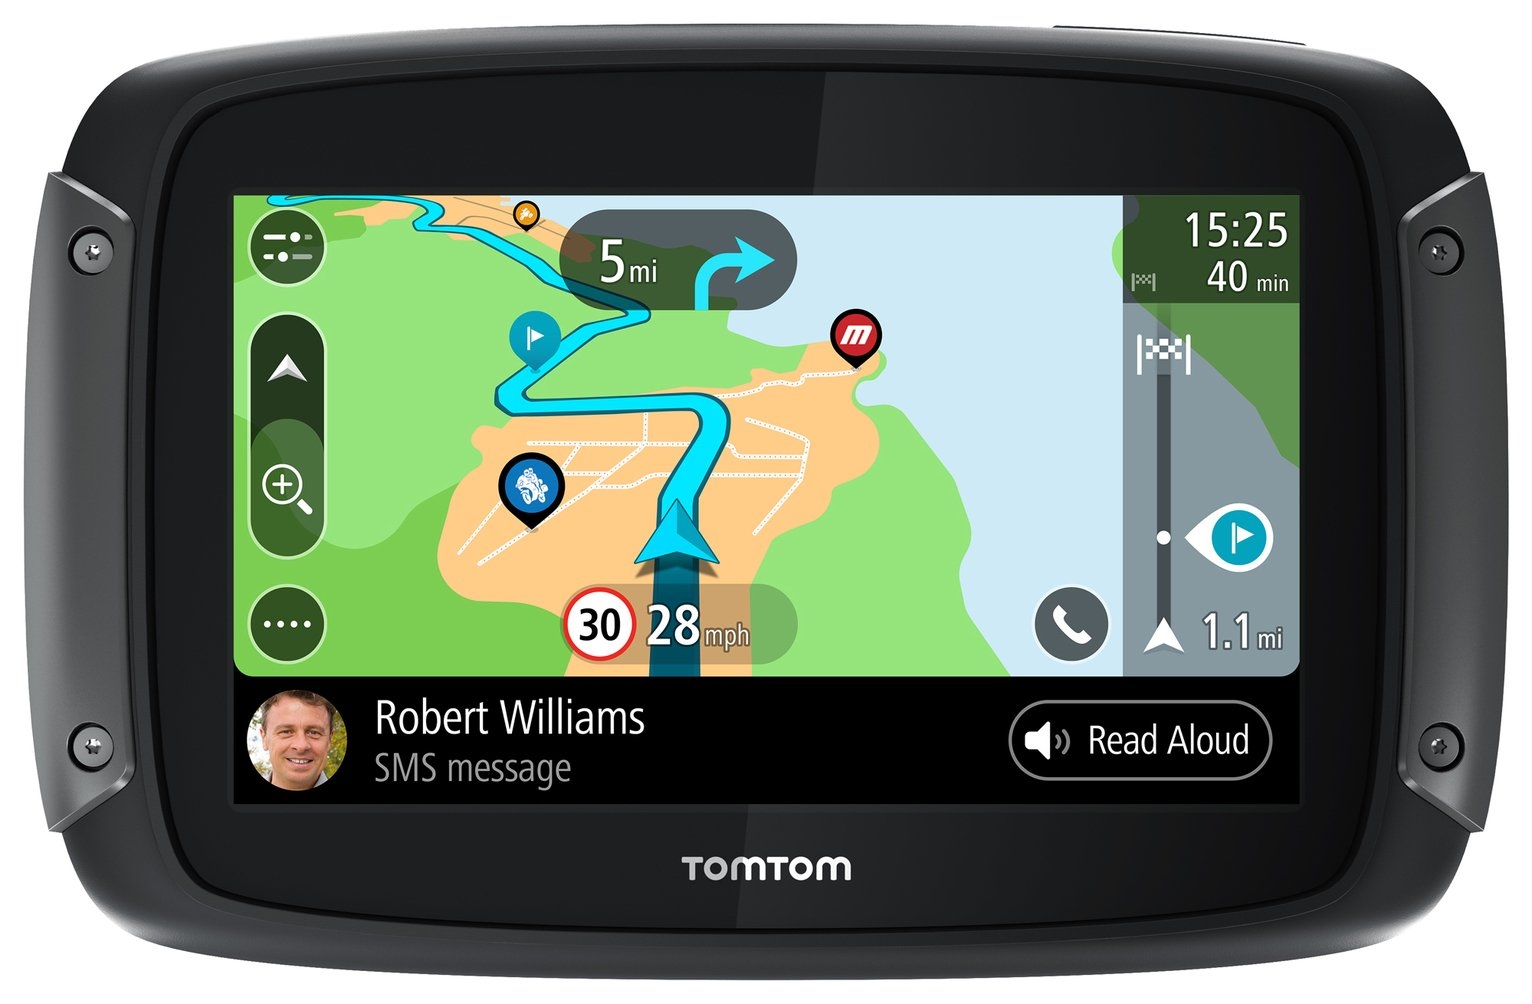 TomTom Rider 500 Motorcycle 4.3 In Sat Nav With Europe Maps